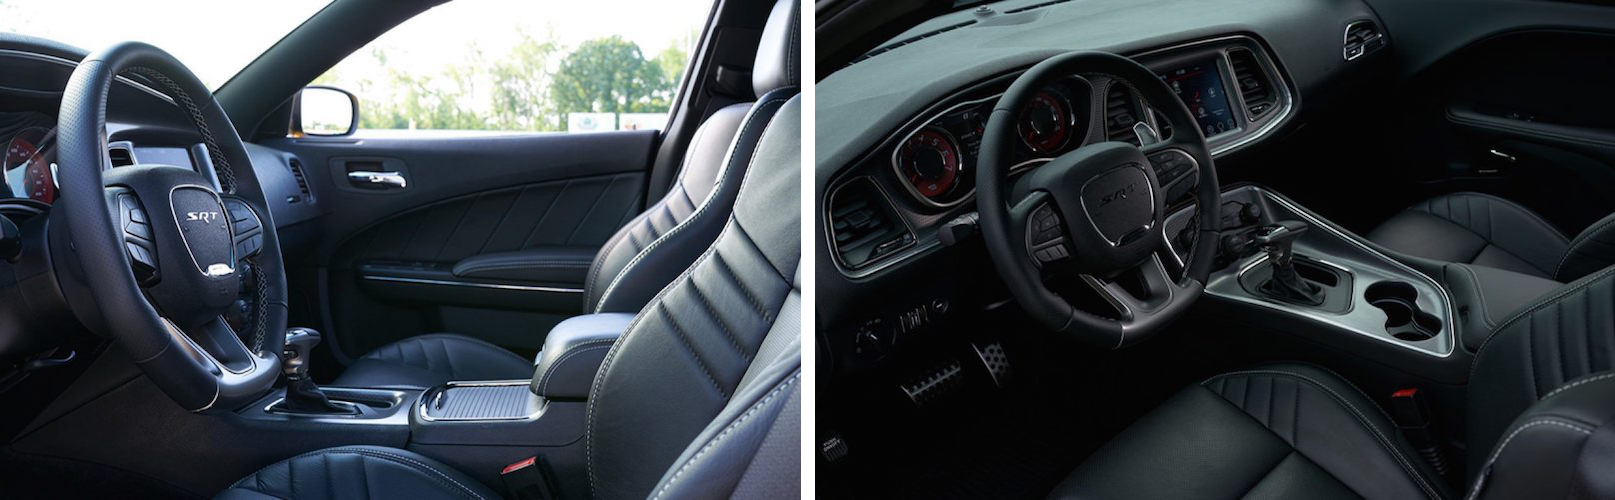 The interior of the Dodge Charger and Challenger